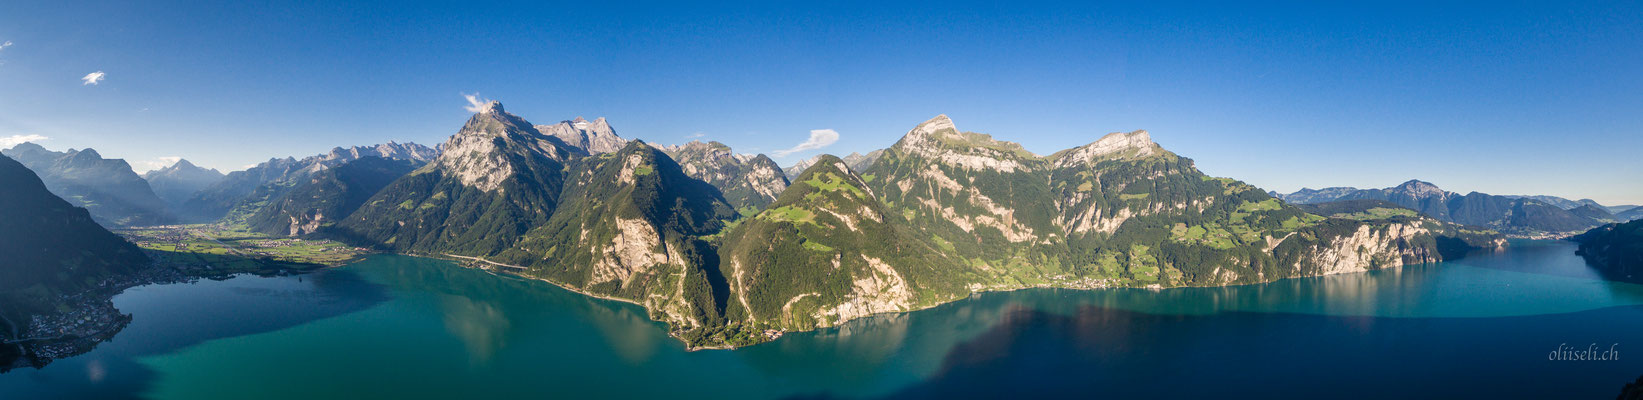 Panorama vom Urnersee mit Blick Richtung Isenthal